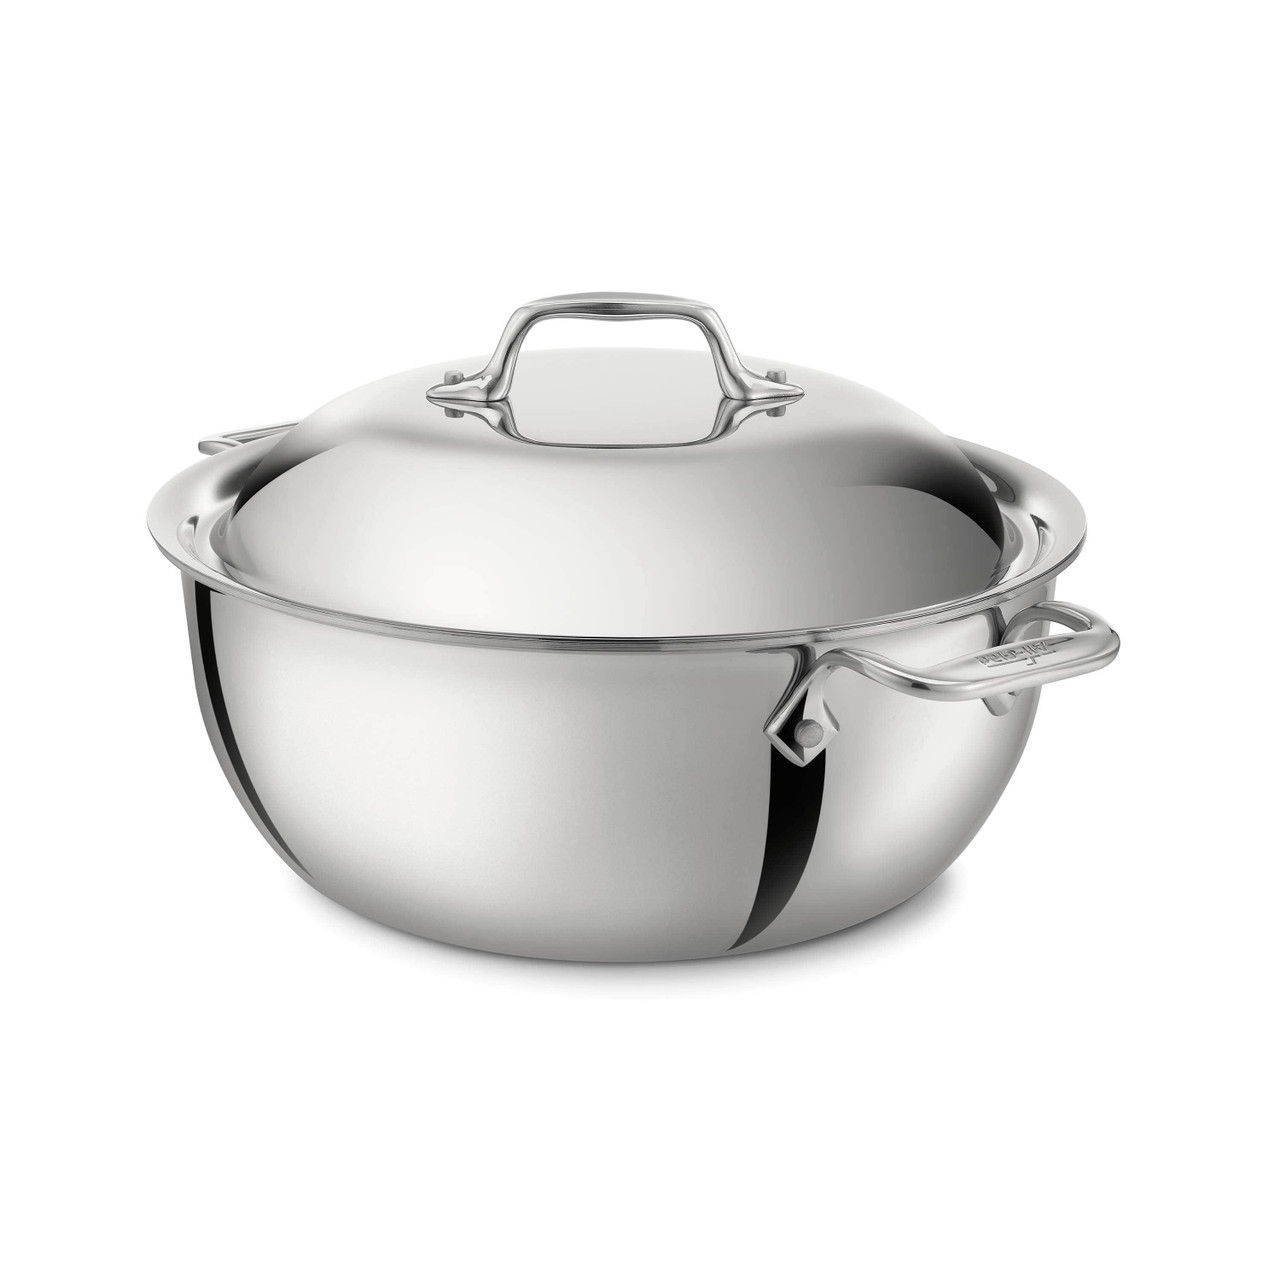 ALL-CLAD STAINLESS DUTCH OVEN 5.5QT